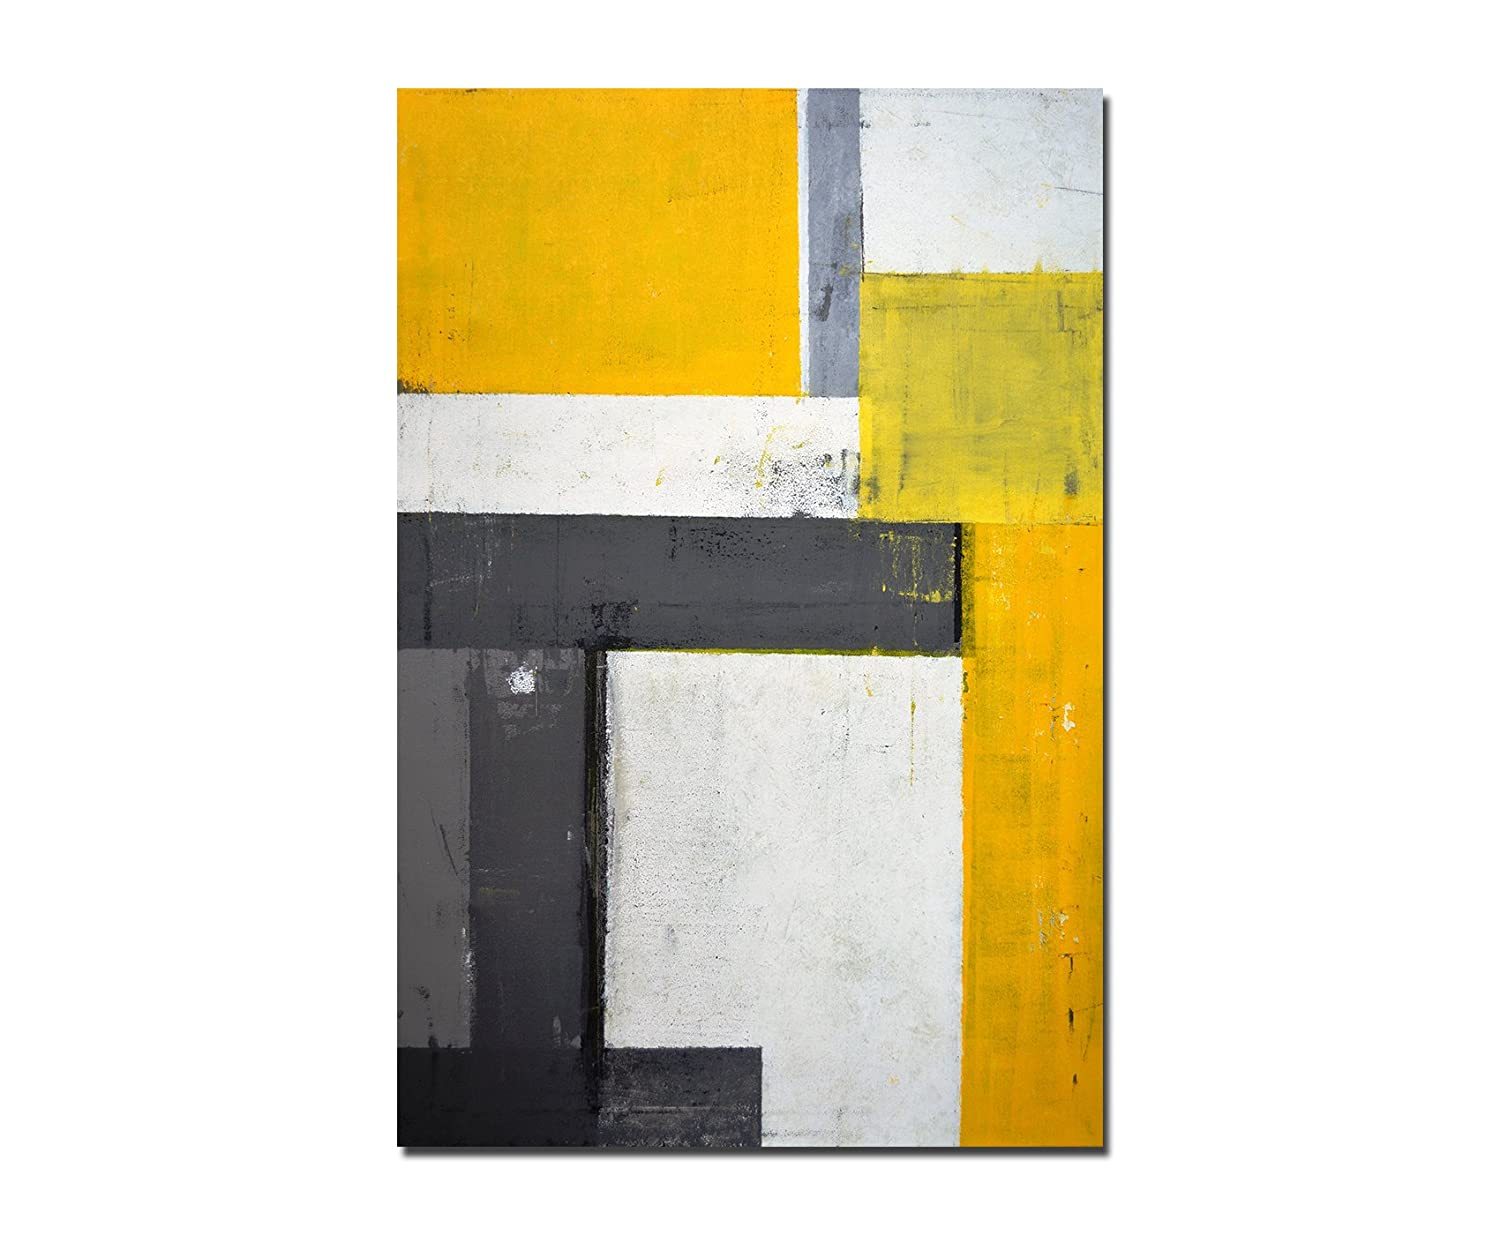 120 x 80 cm - Wall Art Painting Yellow/Grey Abstract Canvas Picture ...